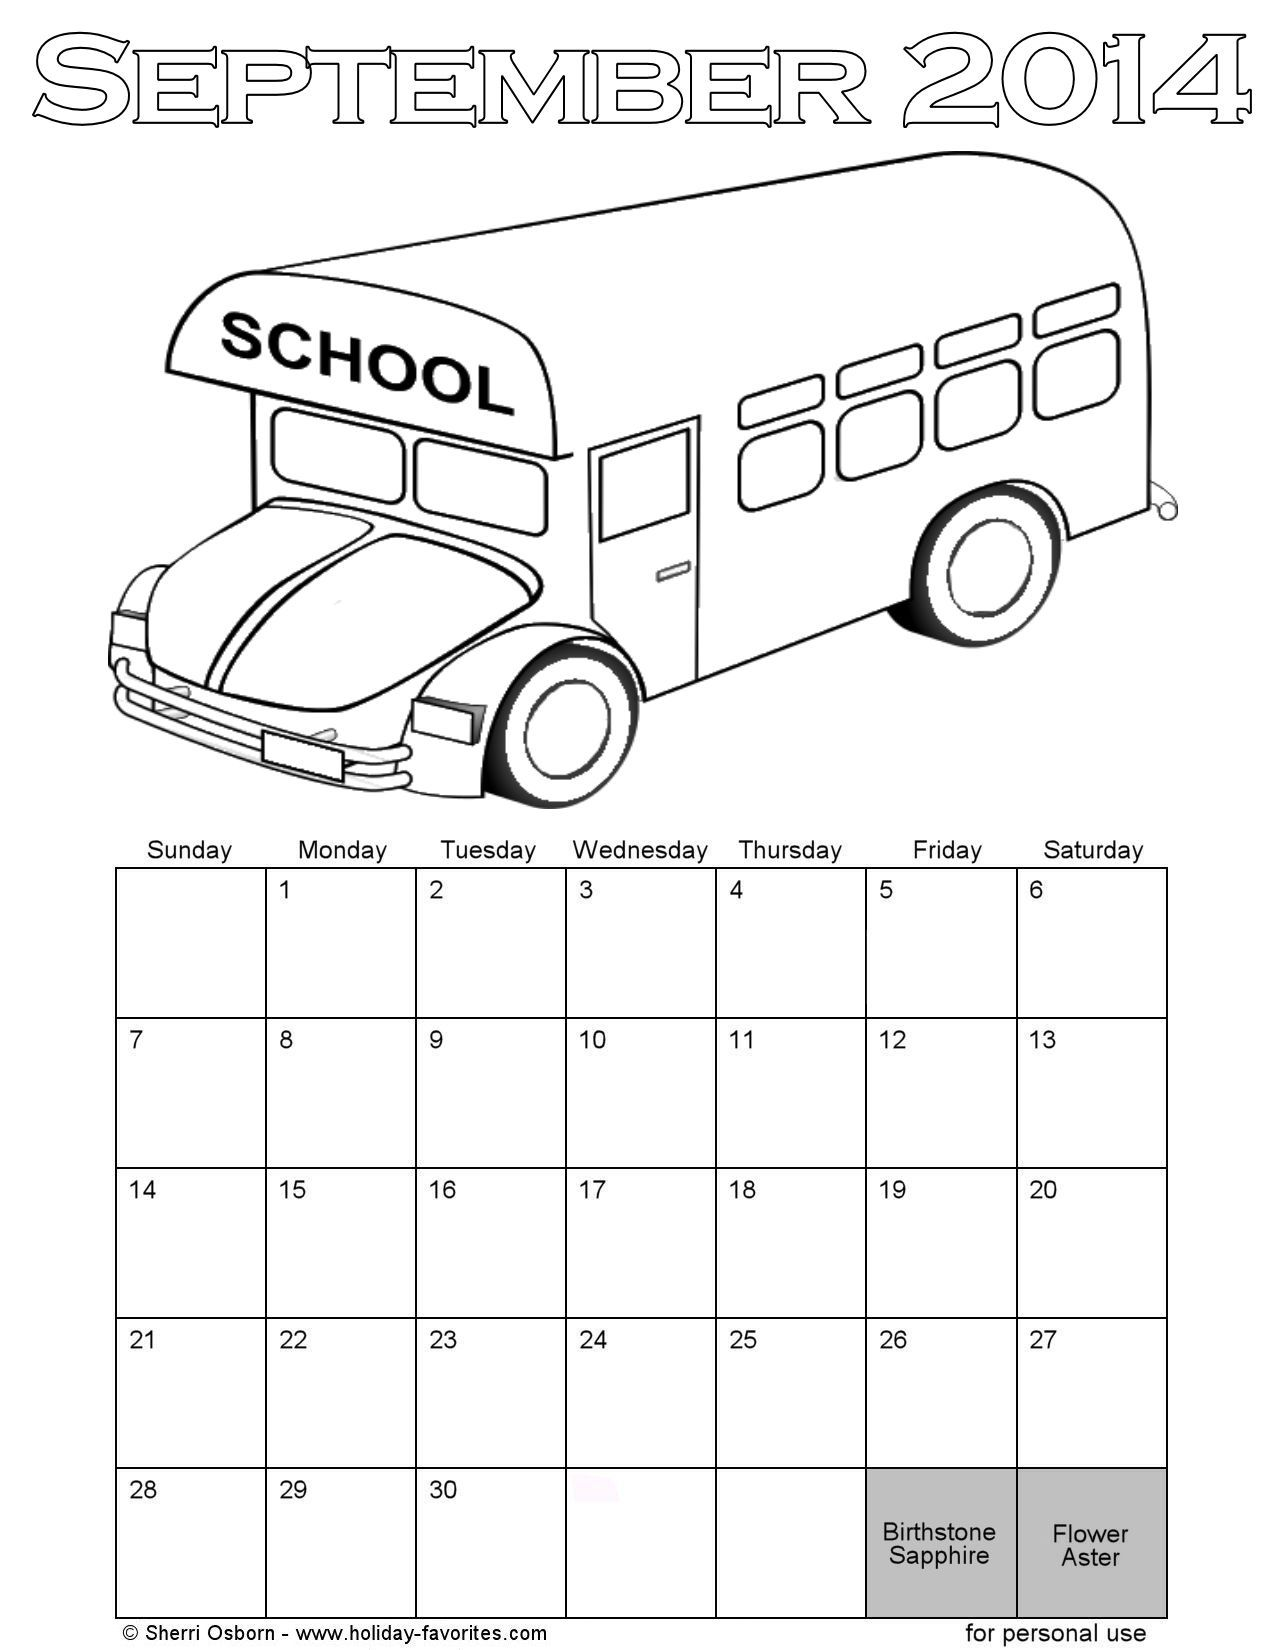 September 2014 School Bus Coloring Page Calendar | Printable Crafts ...